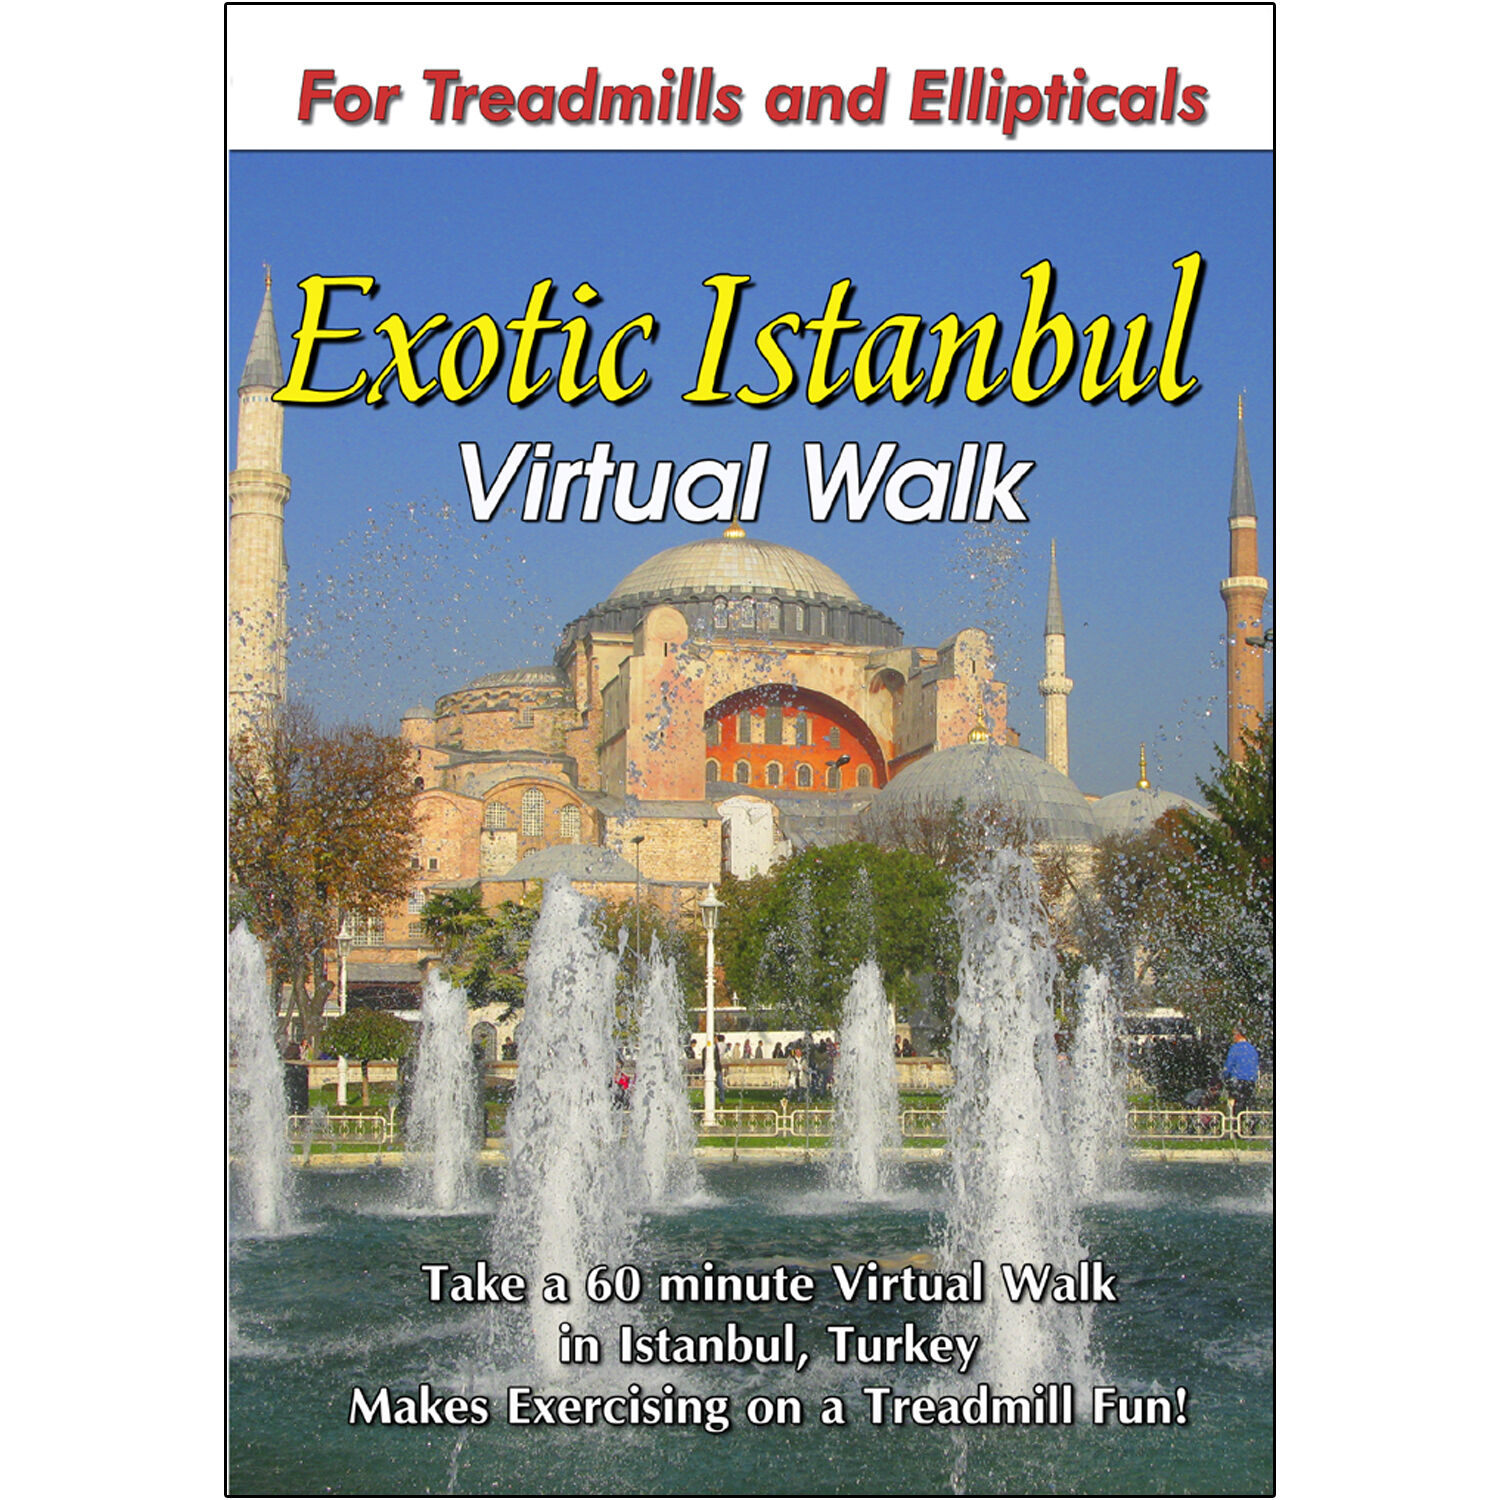 ISTANBUL WALKING TOUR TREADMILL DVD SCENERY VIDEO EXERCISE FITNESS WEIGHT LOSS Reviews